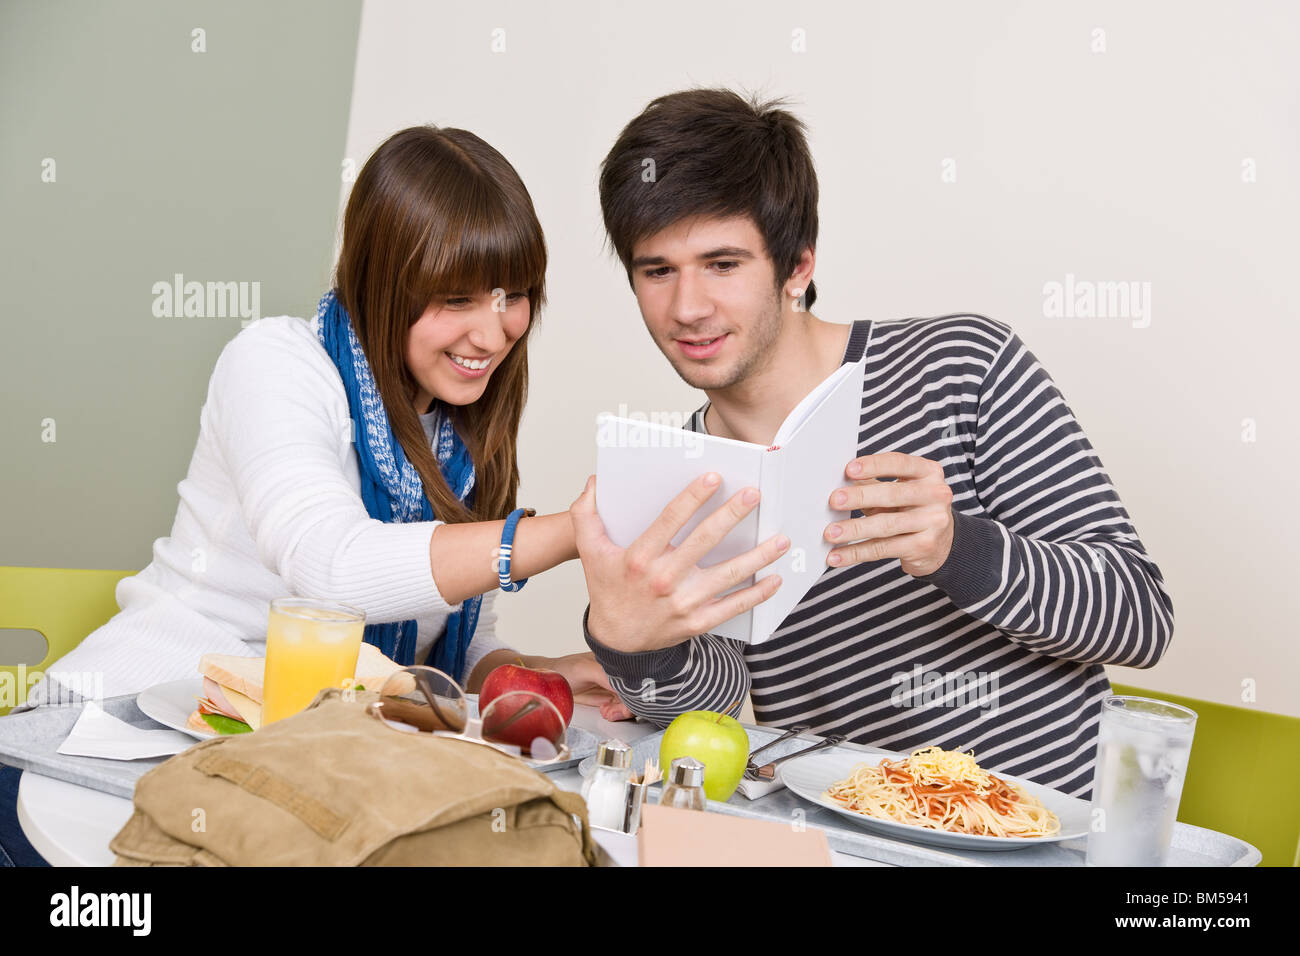 Student cafeteria - Teenagers having lunch break, holding book - Stock Image